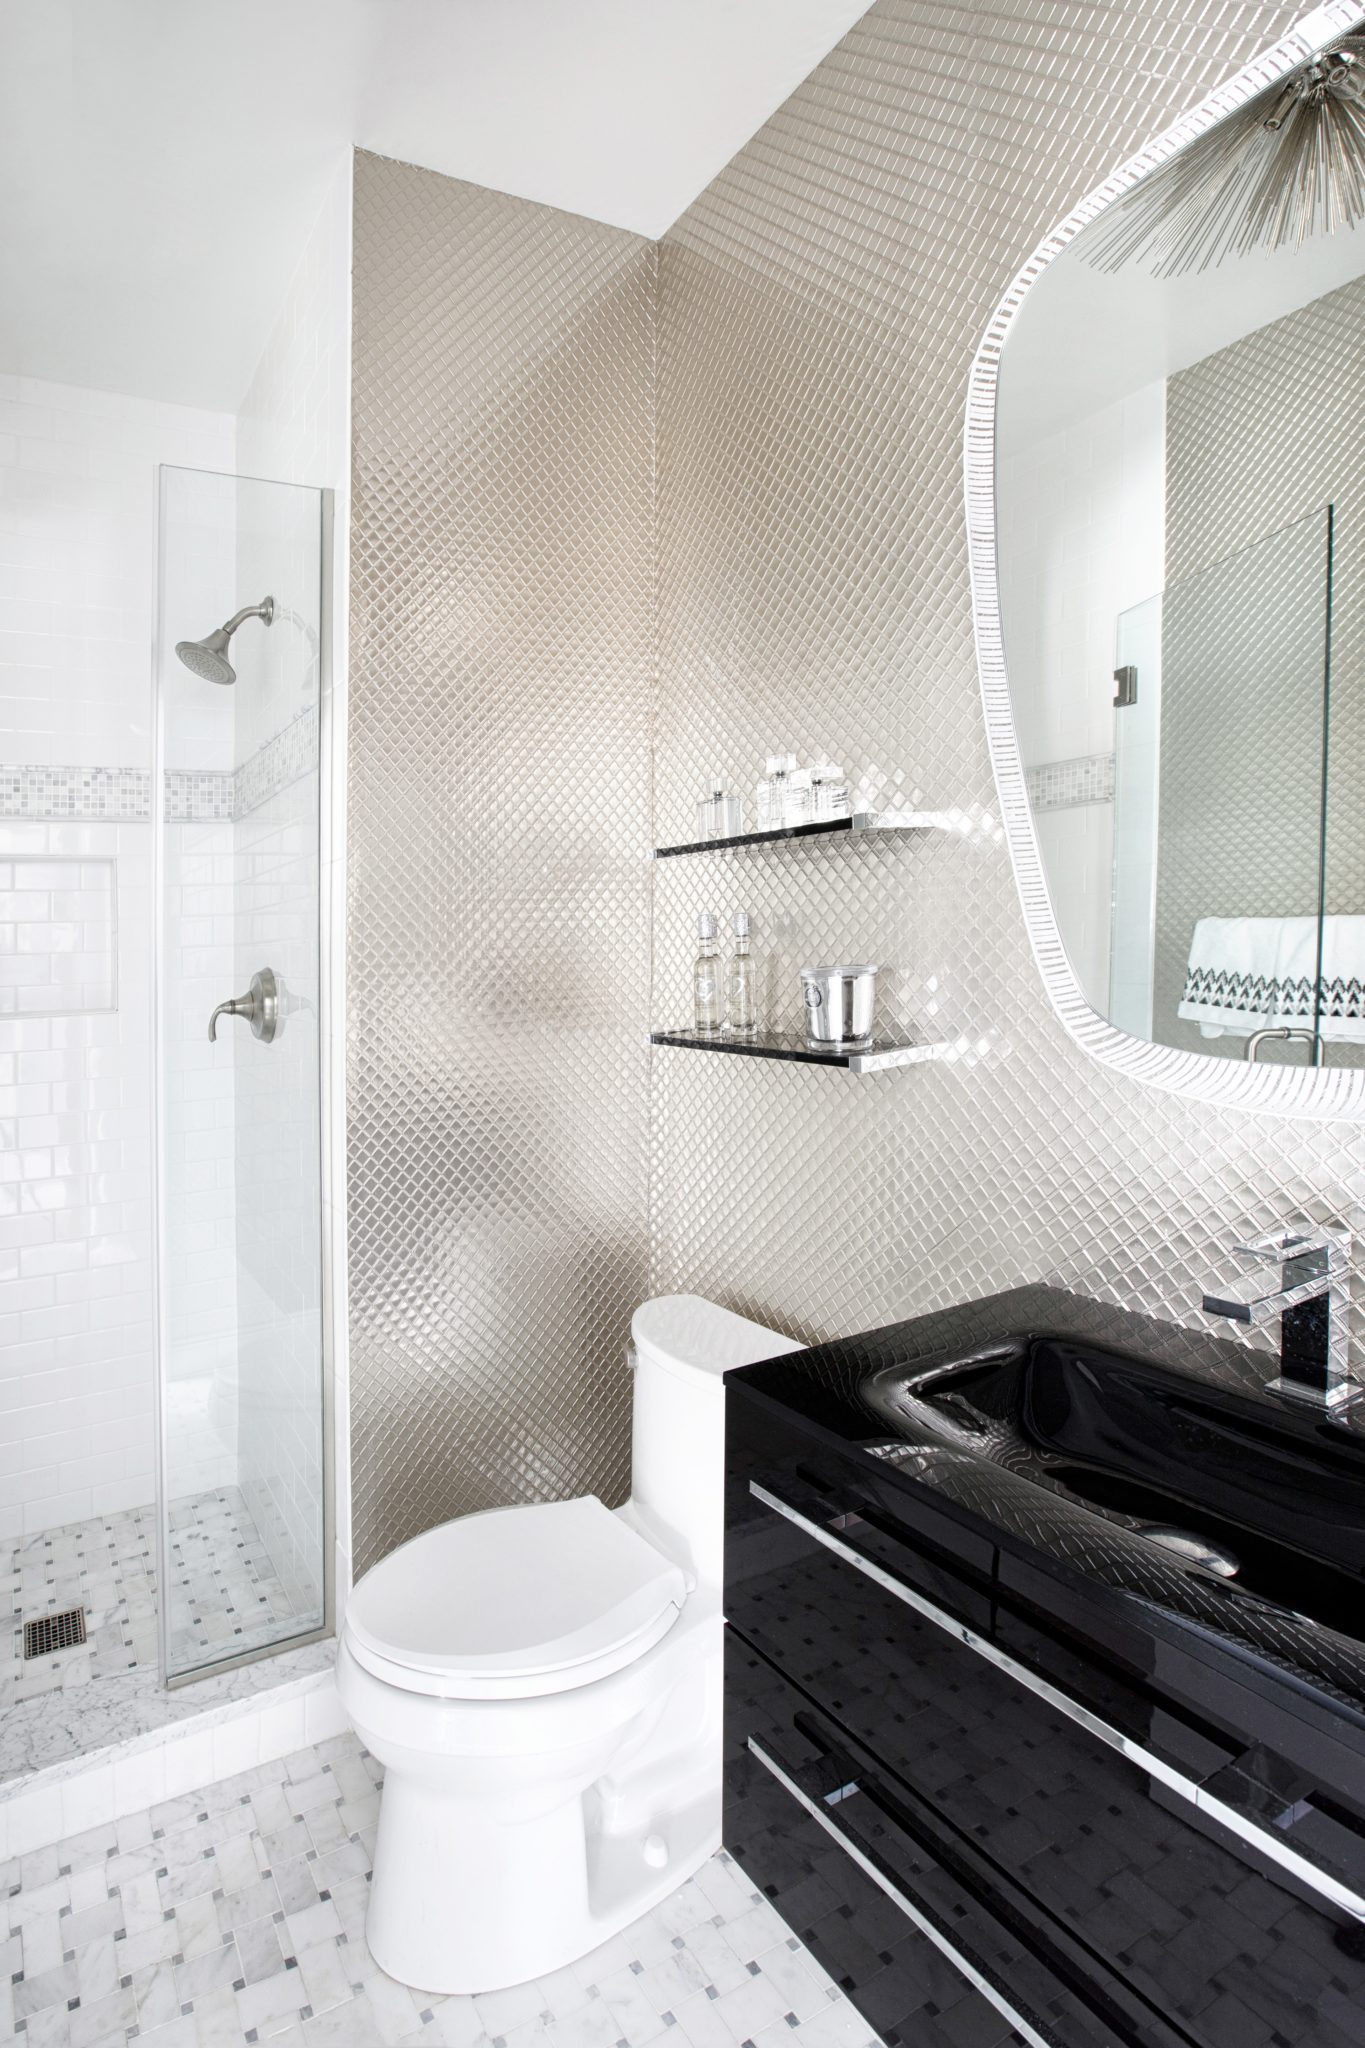 Black bathroom vanity pops against a quilted lacquer wallpaper & back lit mirror by Laura Michaels Design